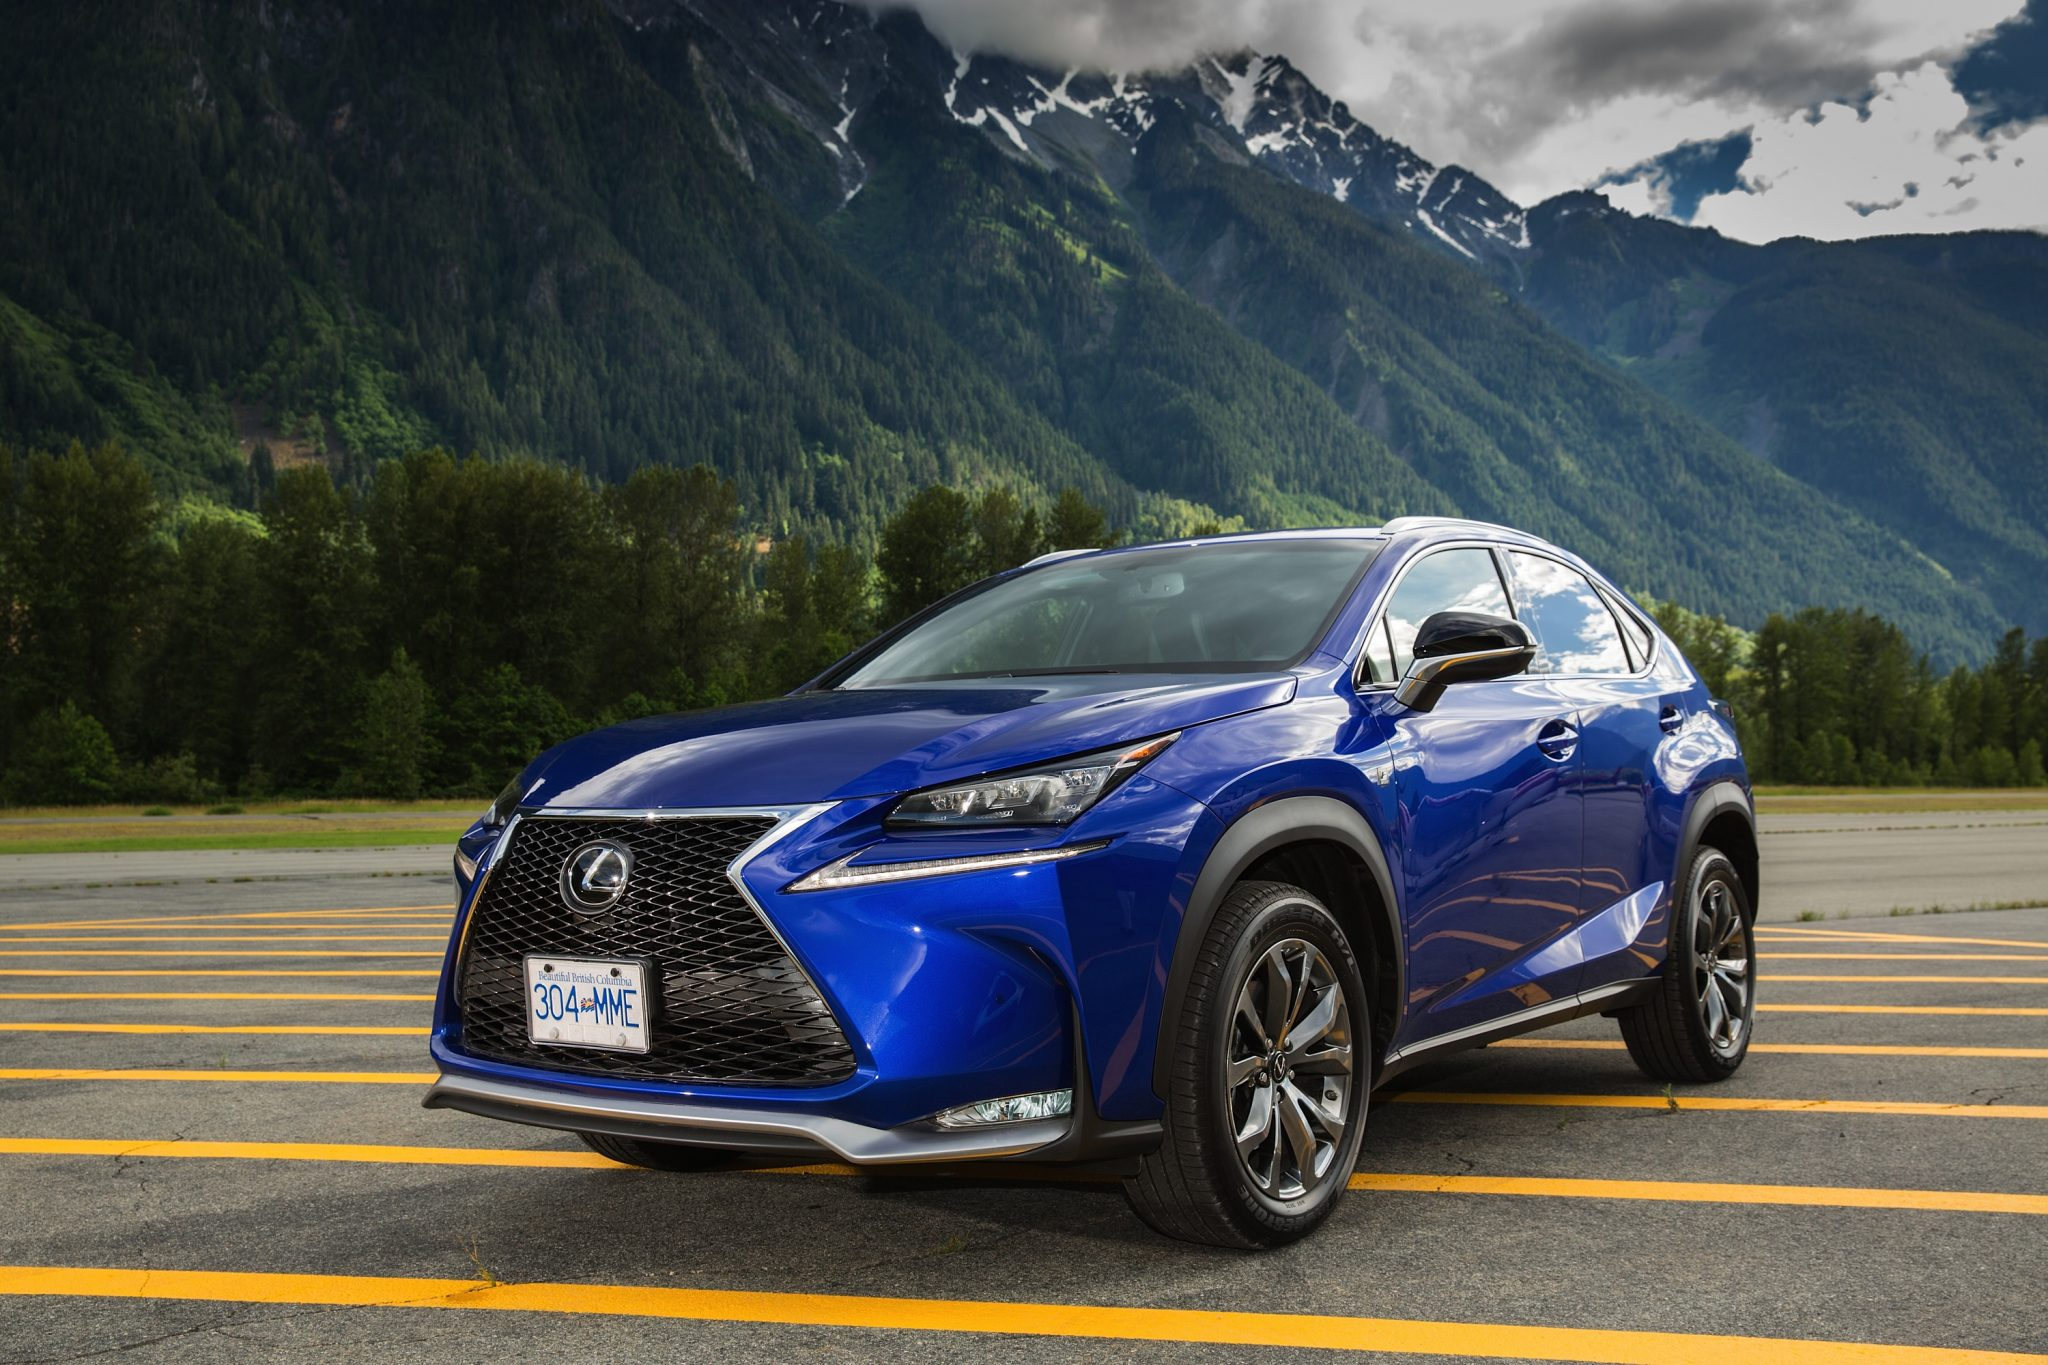 Lexus Cars - News: NX 300h priced from $55,000